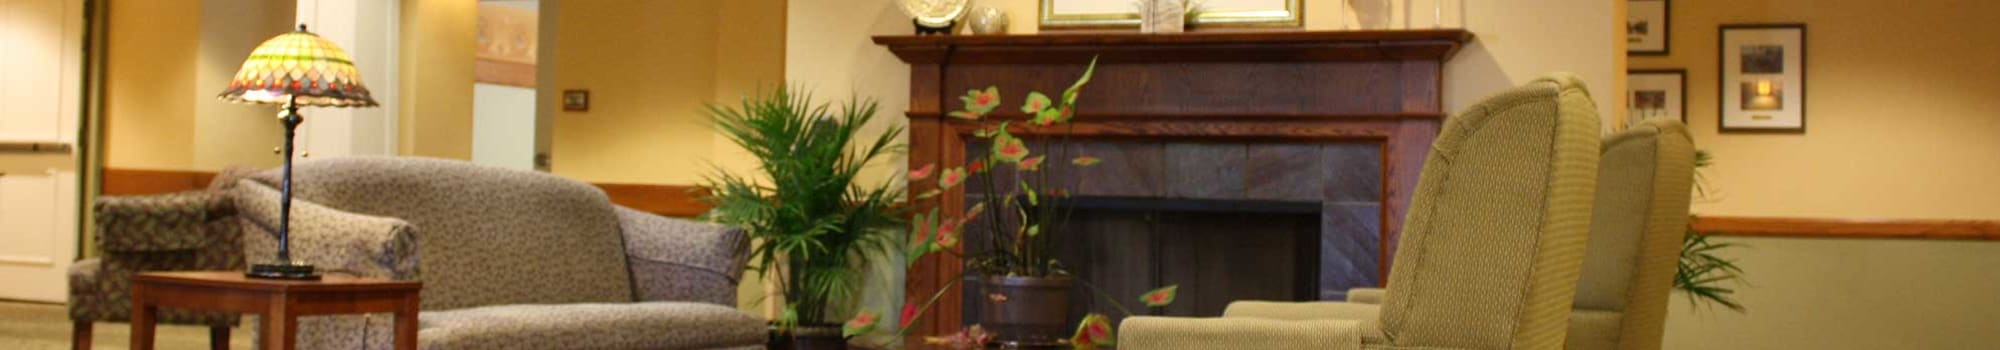 Senior living options in Vernon Hills, IL